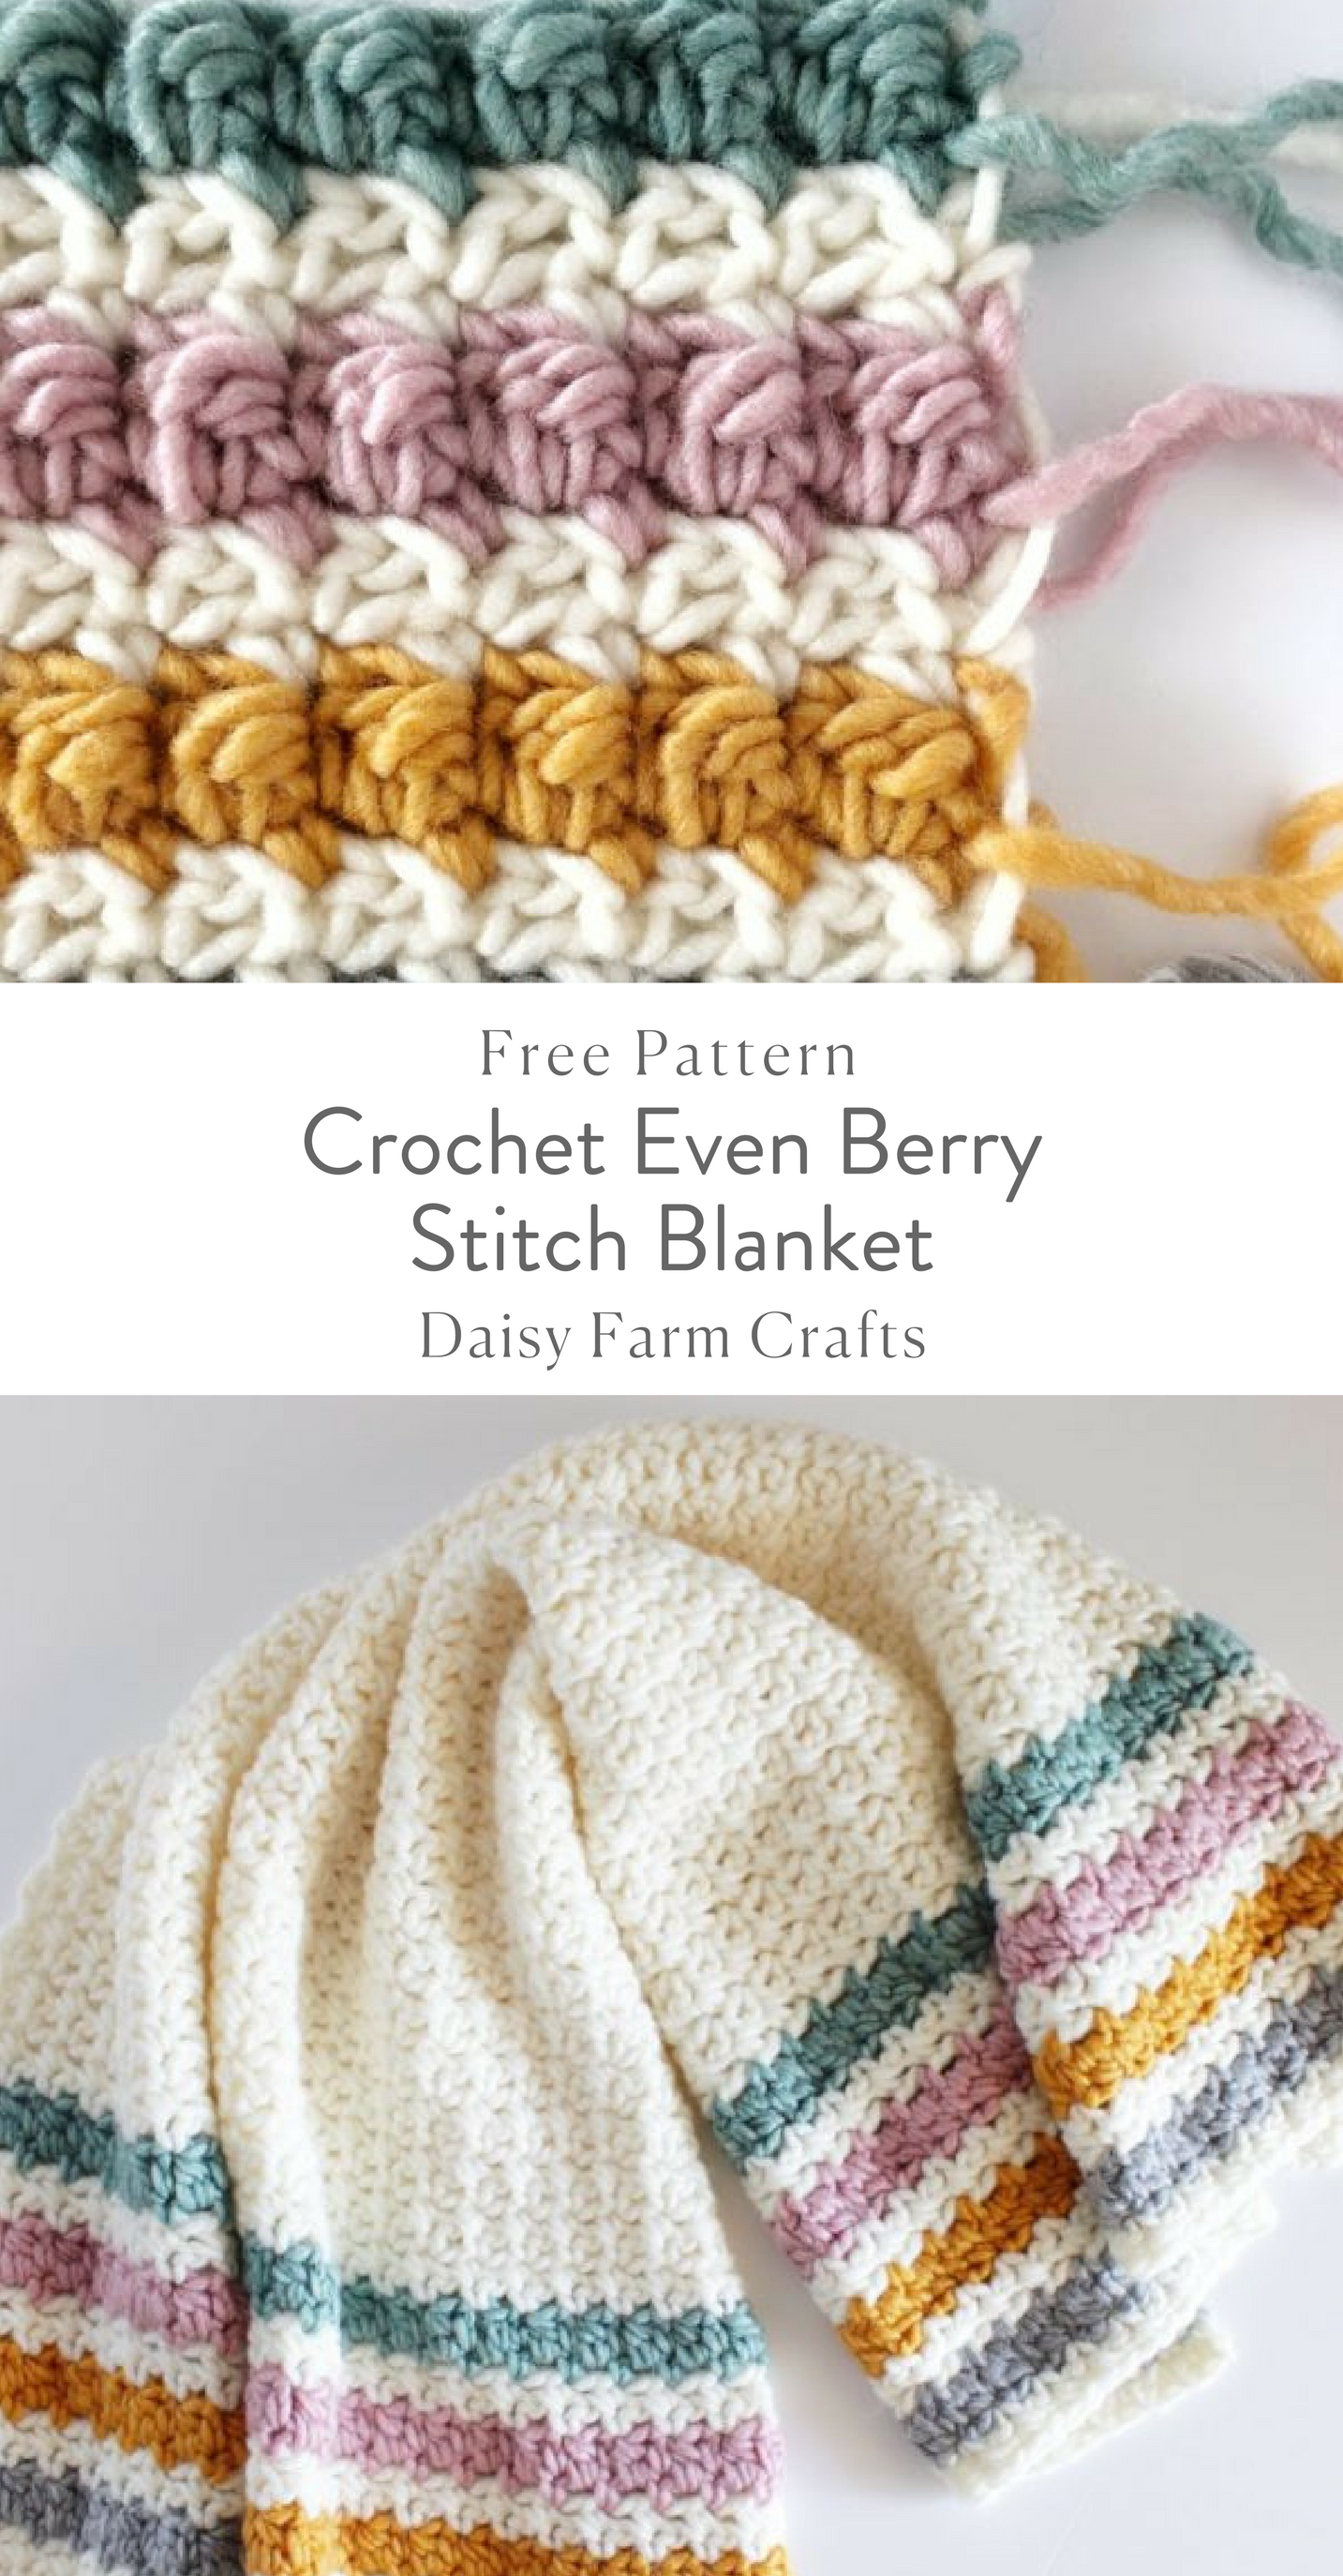 Crochet Even Berry Stitch Blanket - Free Pattern | Crafts and ...